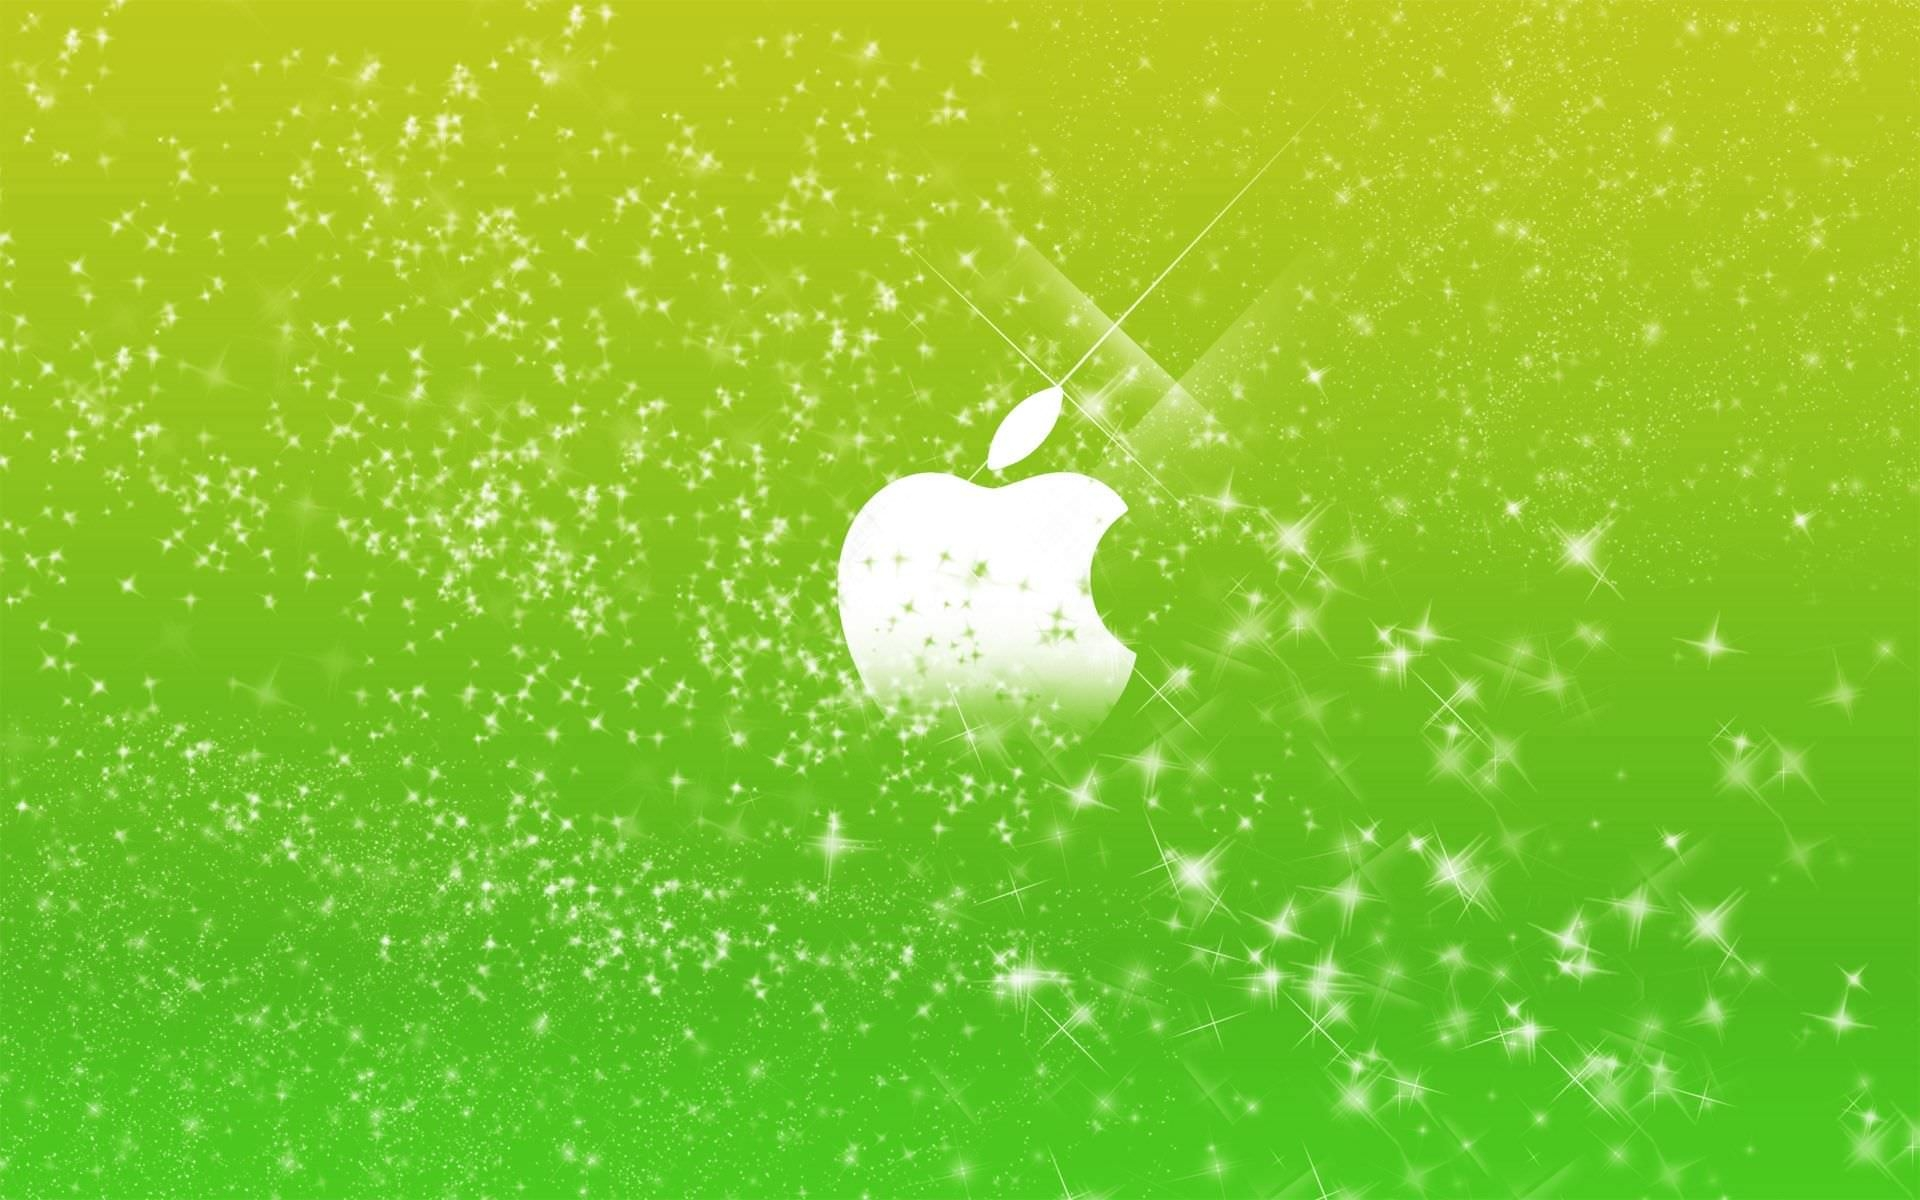 green sparkle background - photo #41